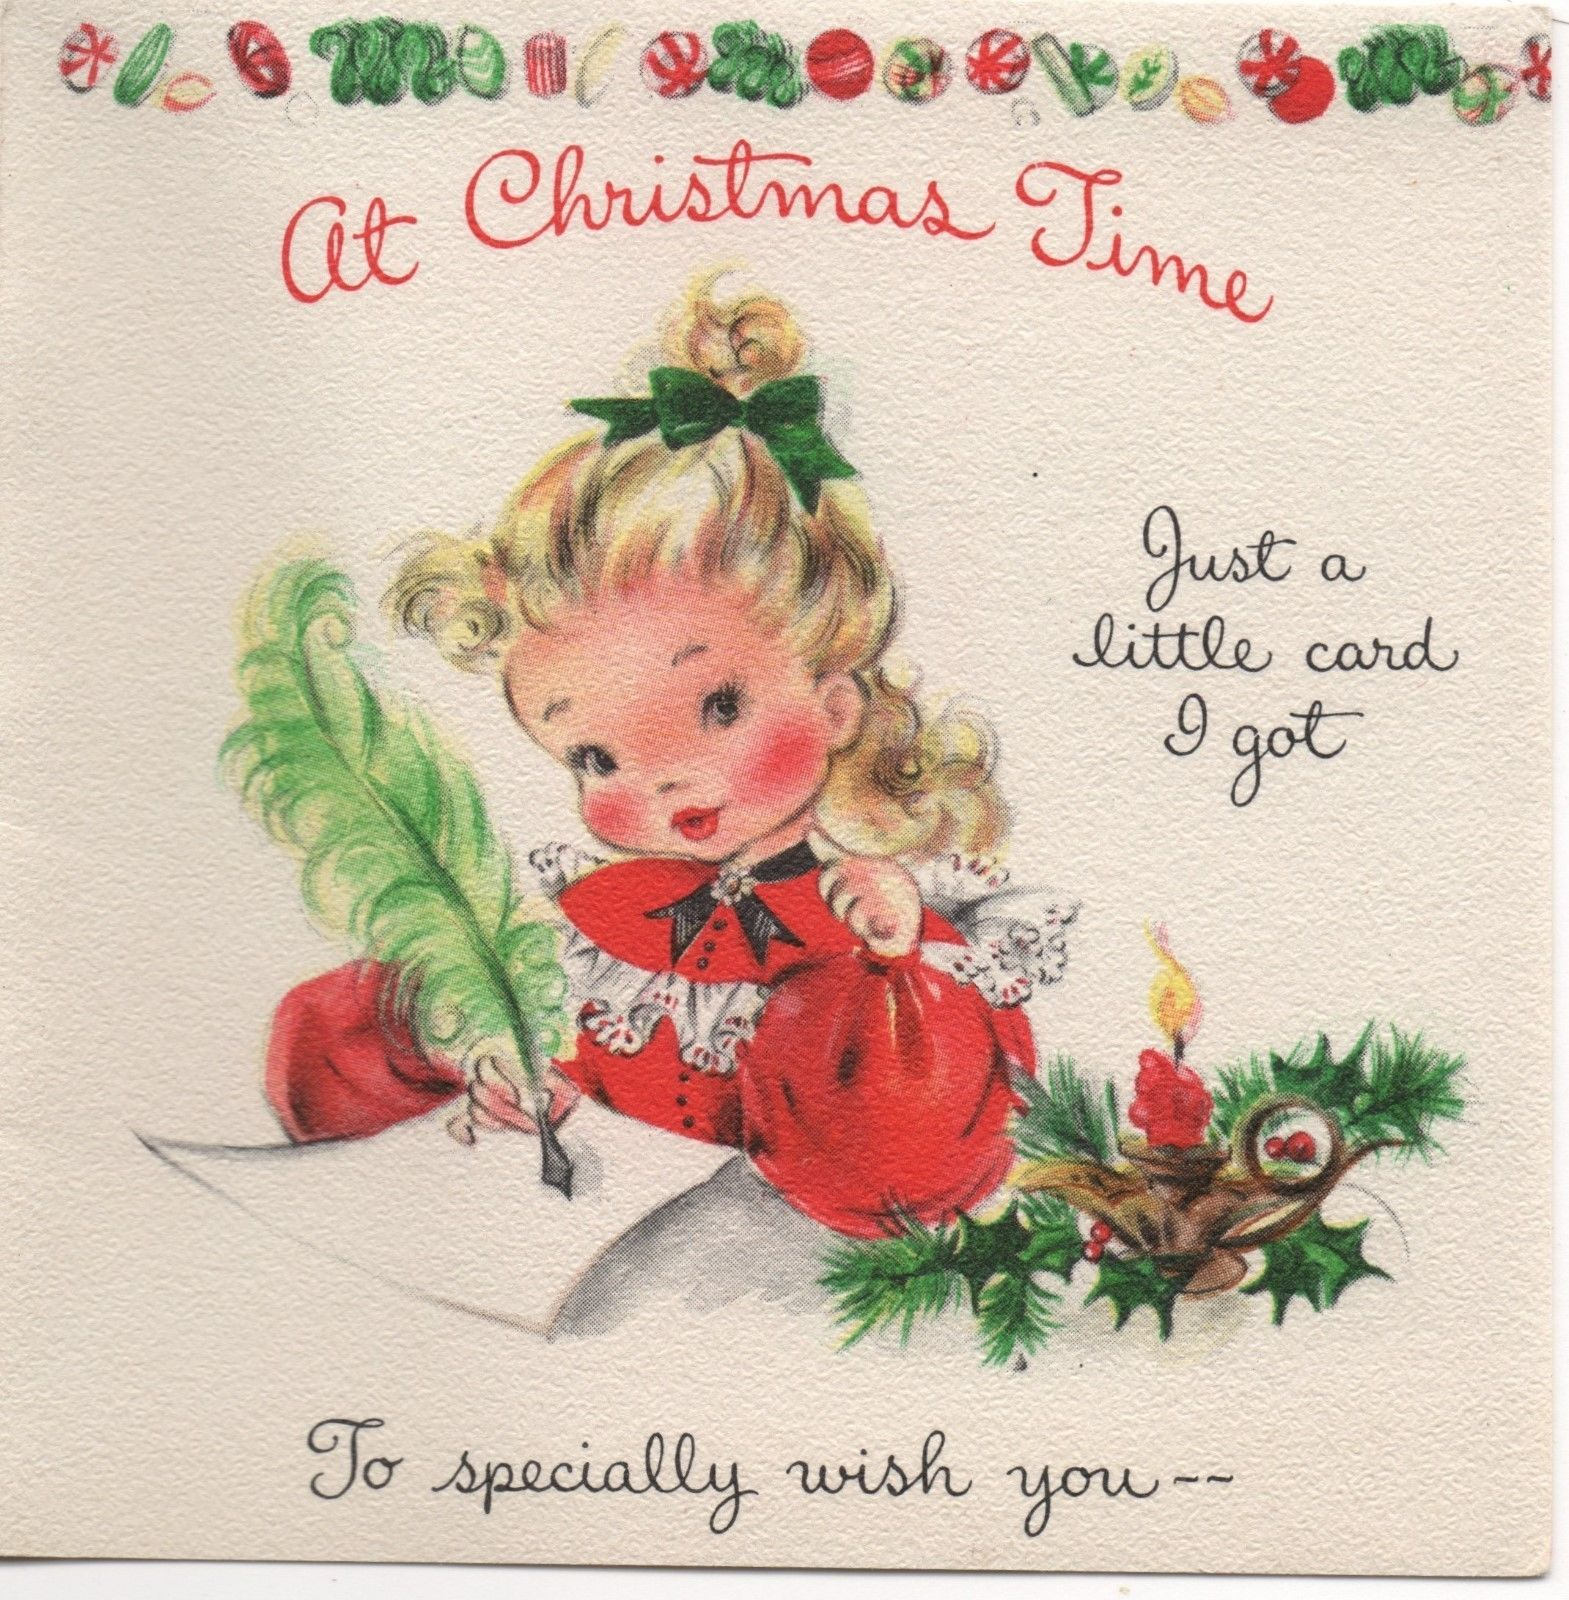 Hallmark pretty lady girl dress candy cane letter vtg christmas hallmark pretty lady girl dress candy cane letter vtg christmas greeting card kristyandbryce Image collections